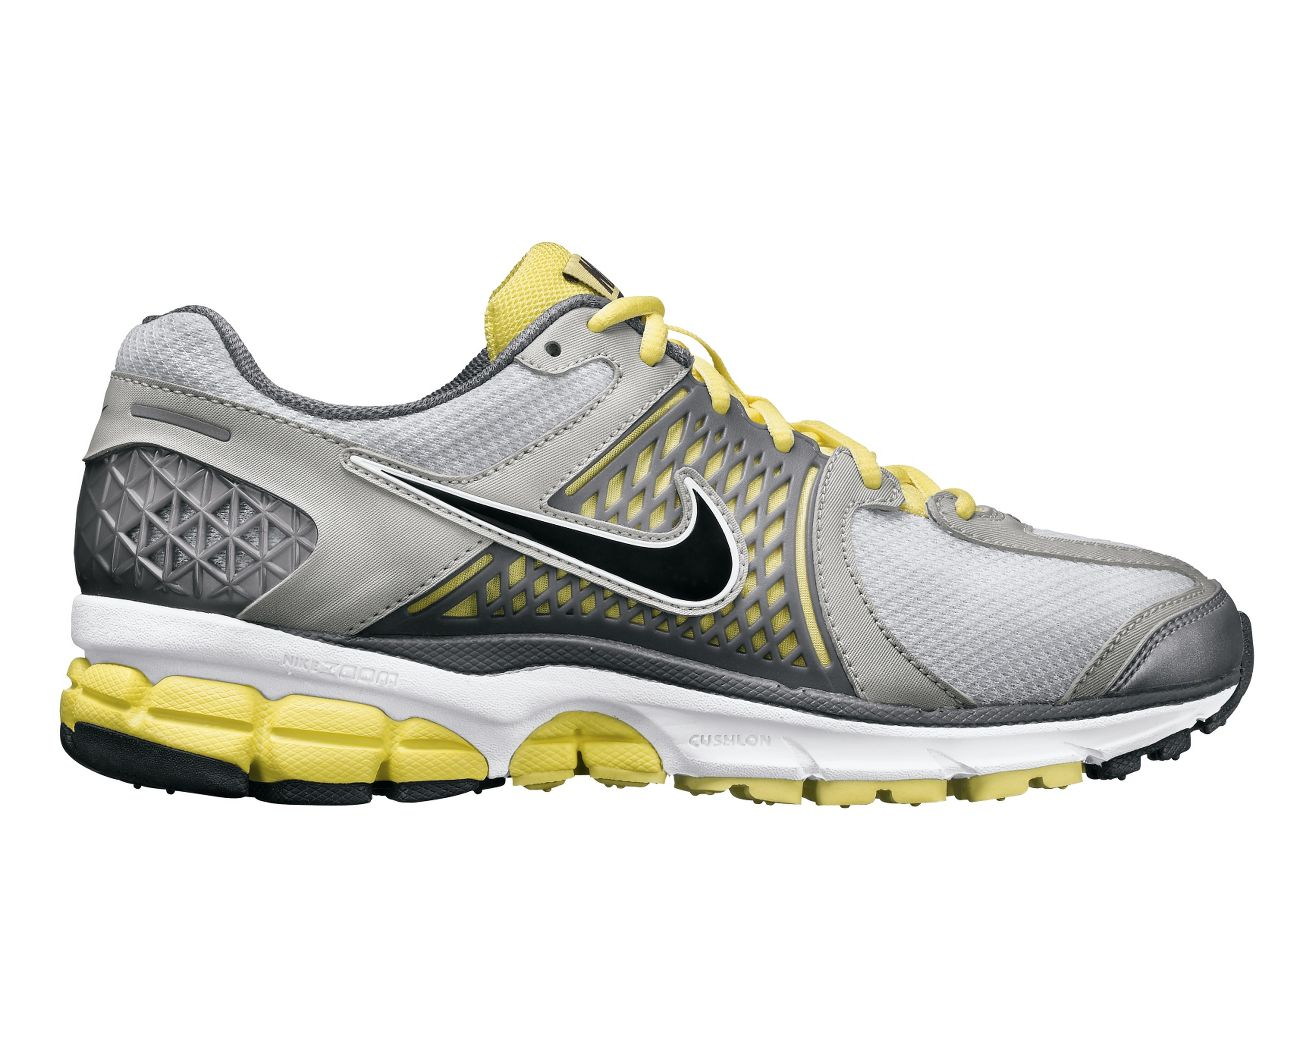 3bdd9453991b ... denmark womens nike zoom vomero 6 running shoe at road runner sports  d7fe7 7470c